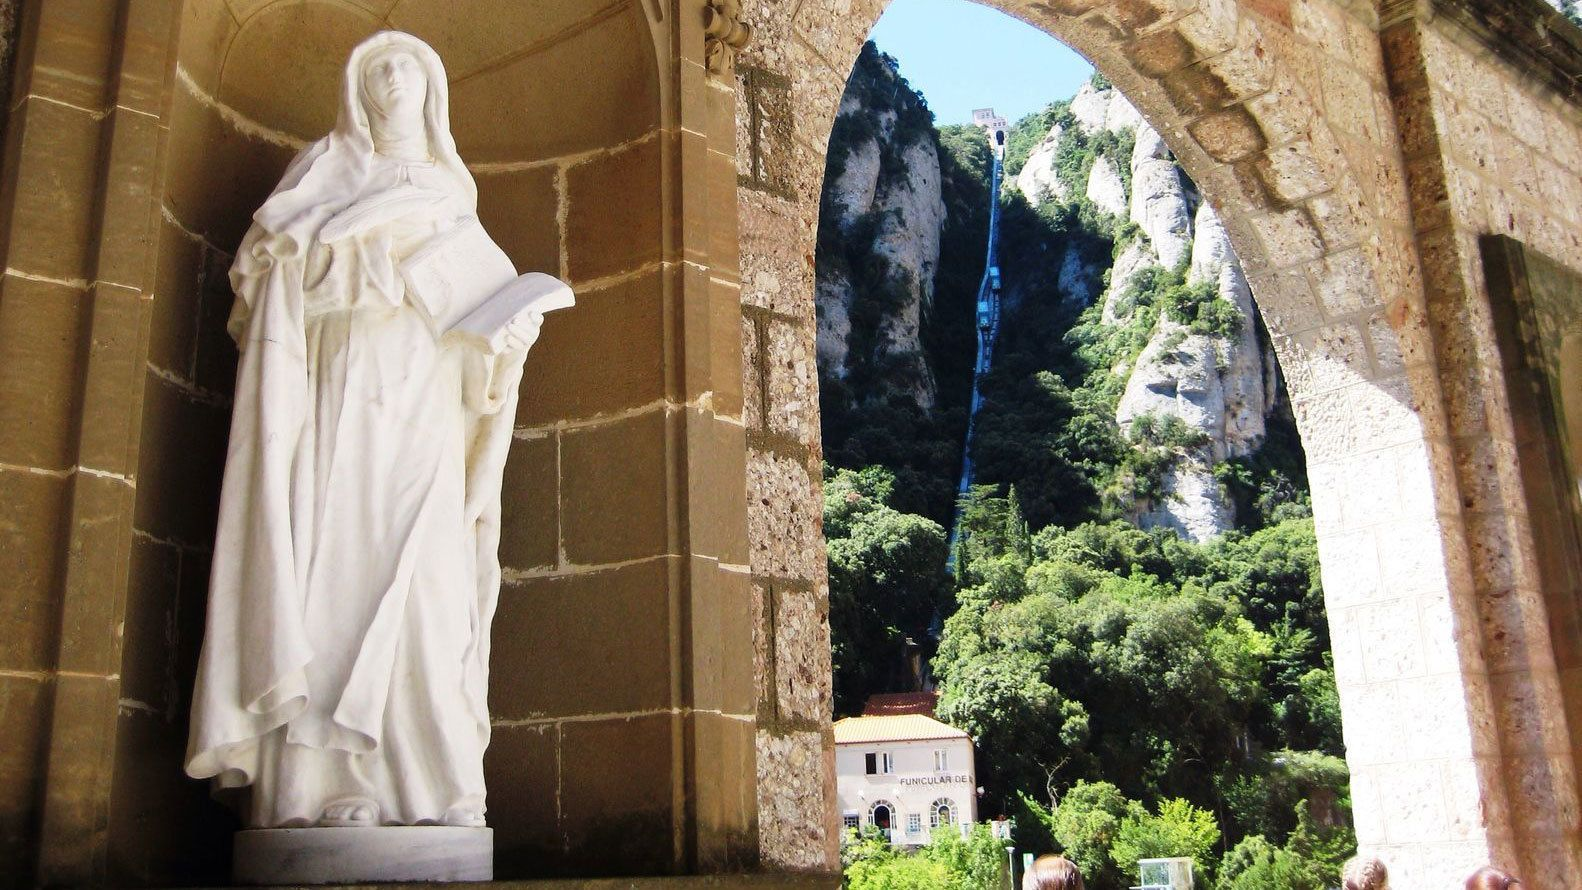 Sculpture and archway at Montserrat